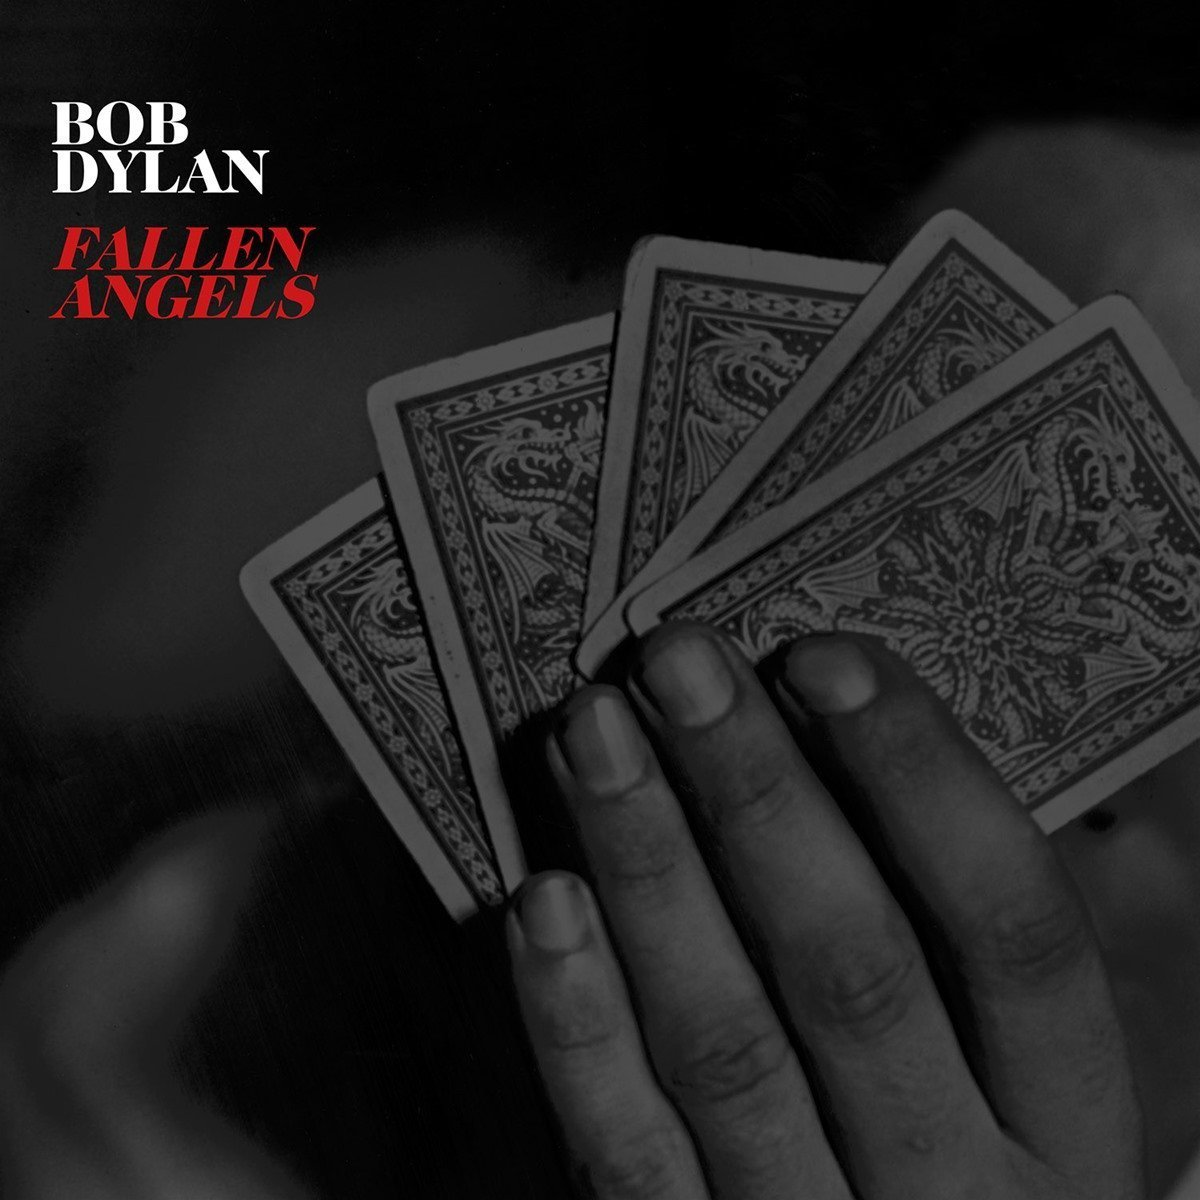 Bob Dylan: Fallen Angels [Album Review]